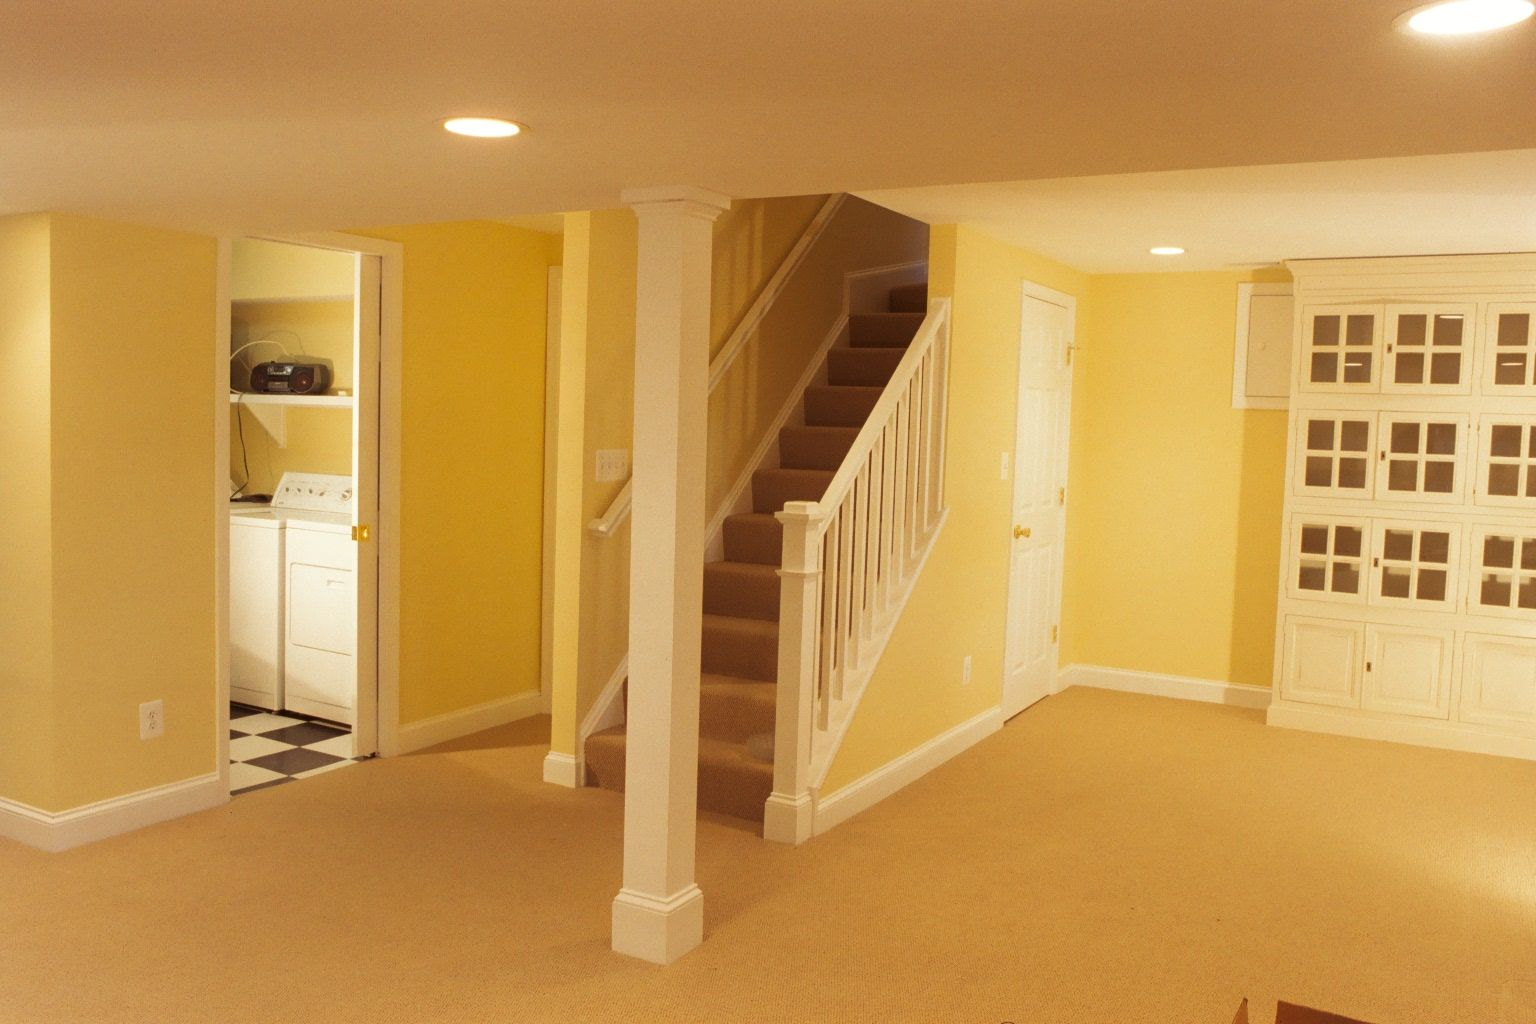 Basement Remodeling Milwaukee Exterior Interior basement renovation to include rebuilding stairs and pulling back